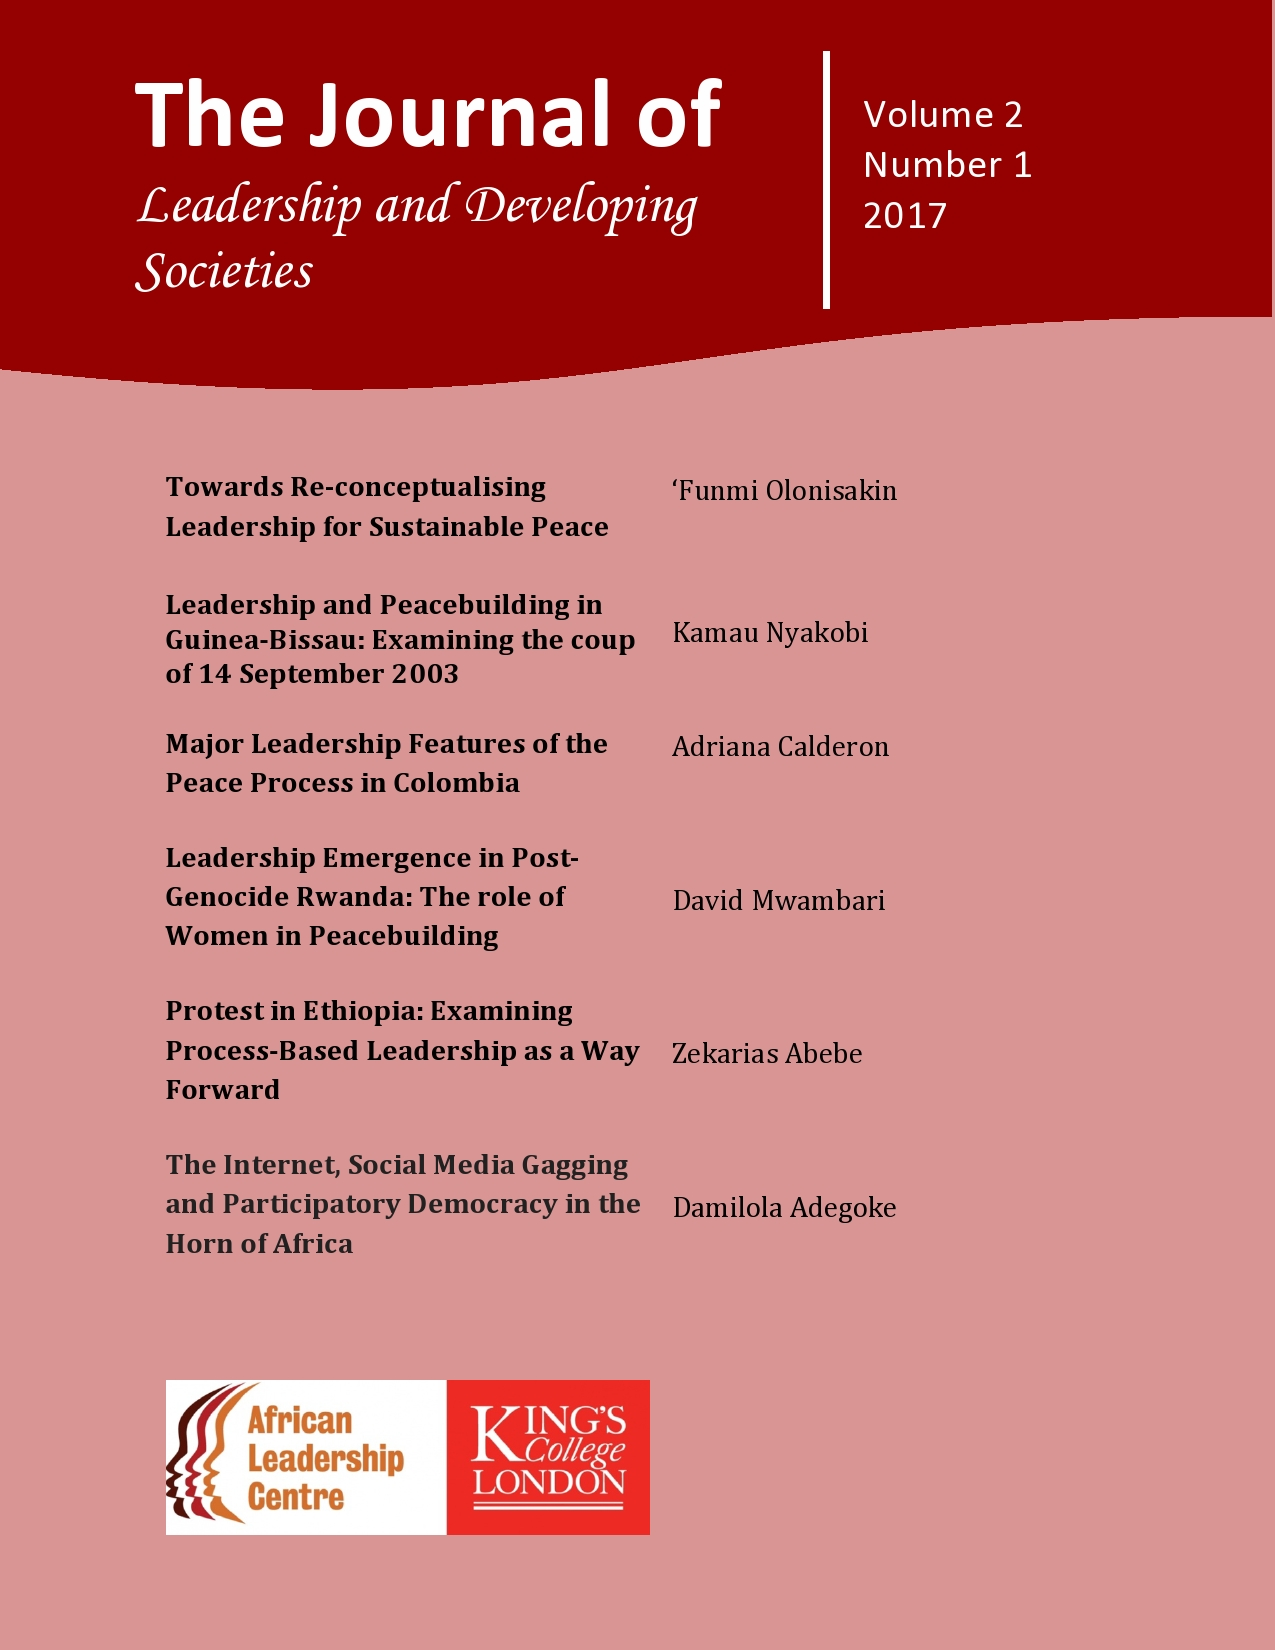 The Journal of Leadership and Developing Societies Volume 2, Number 1 2017